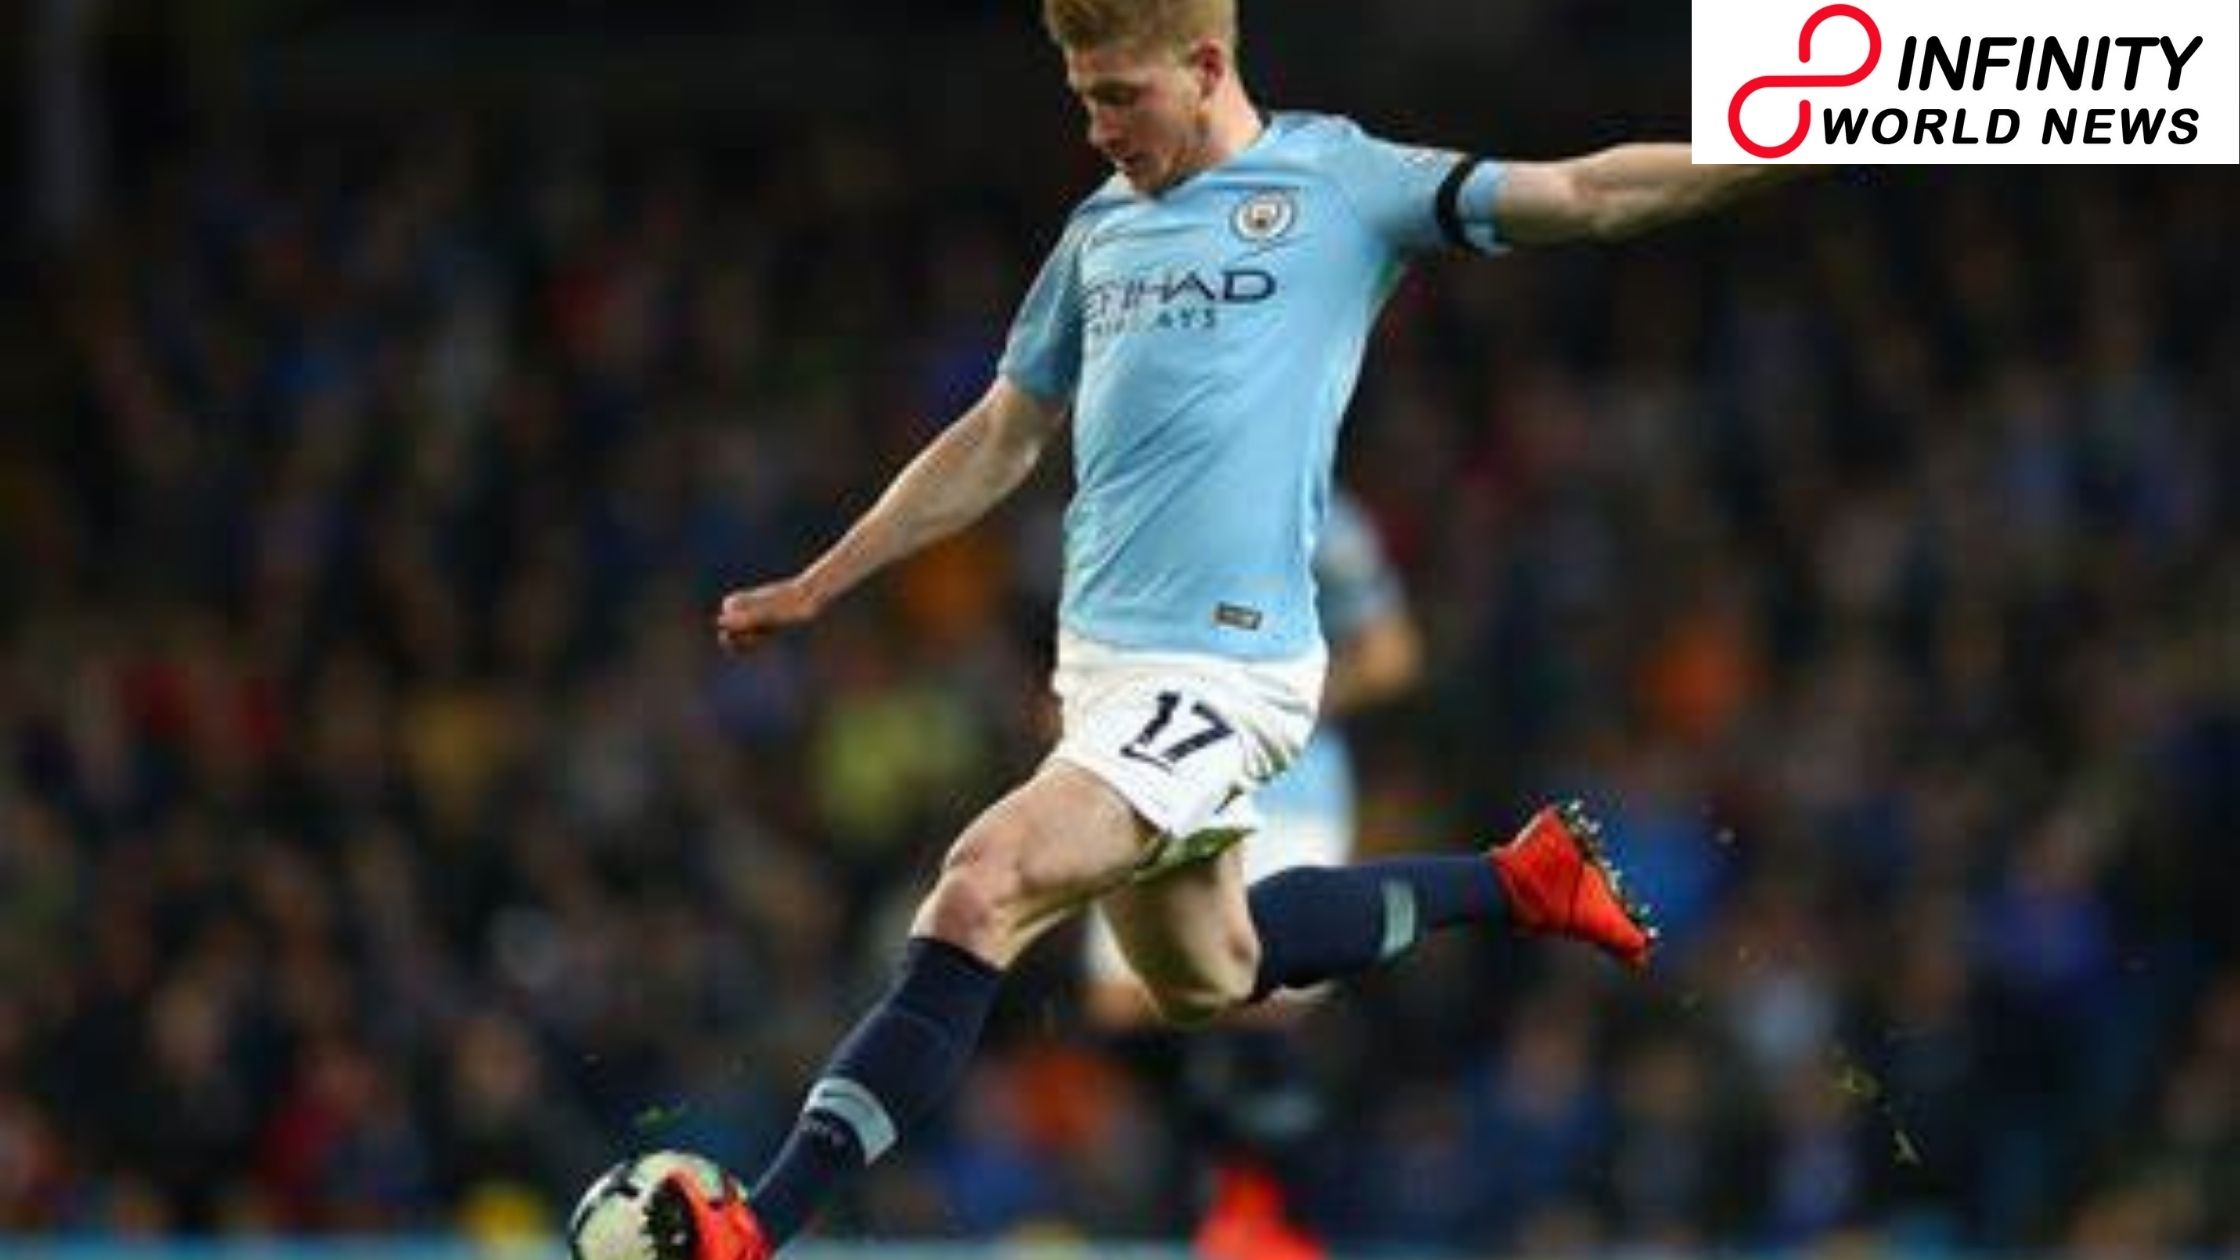 Kevin De Bruyne needs Manchester City to remain contract talks